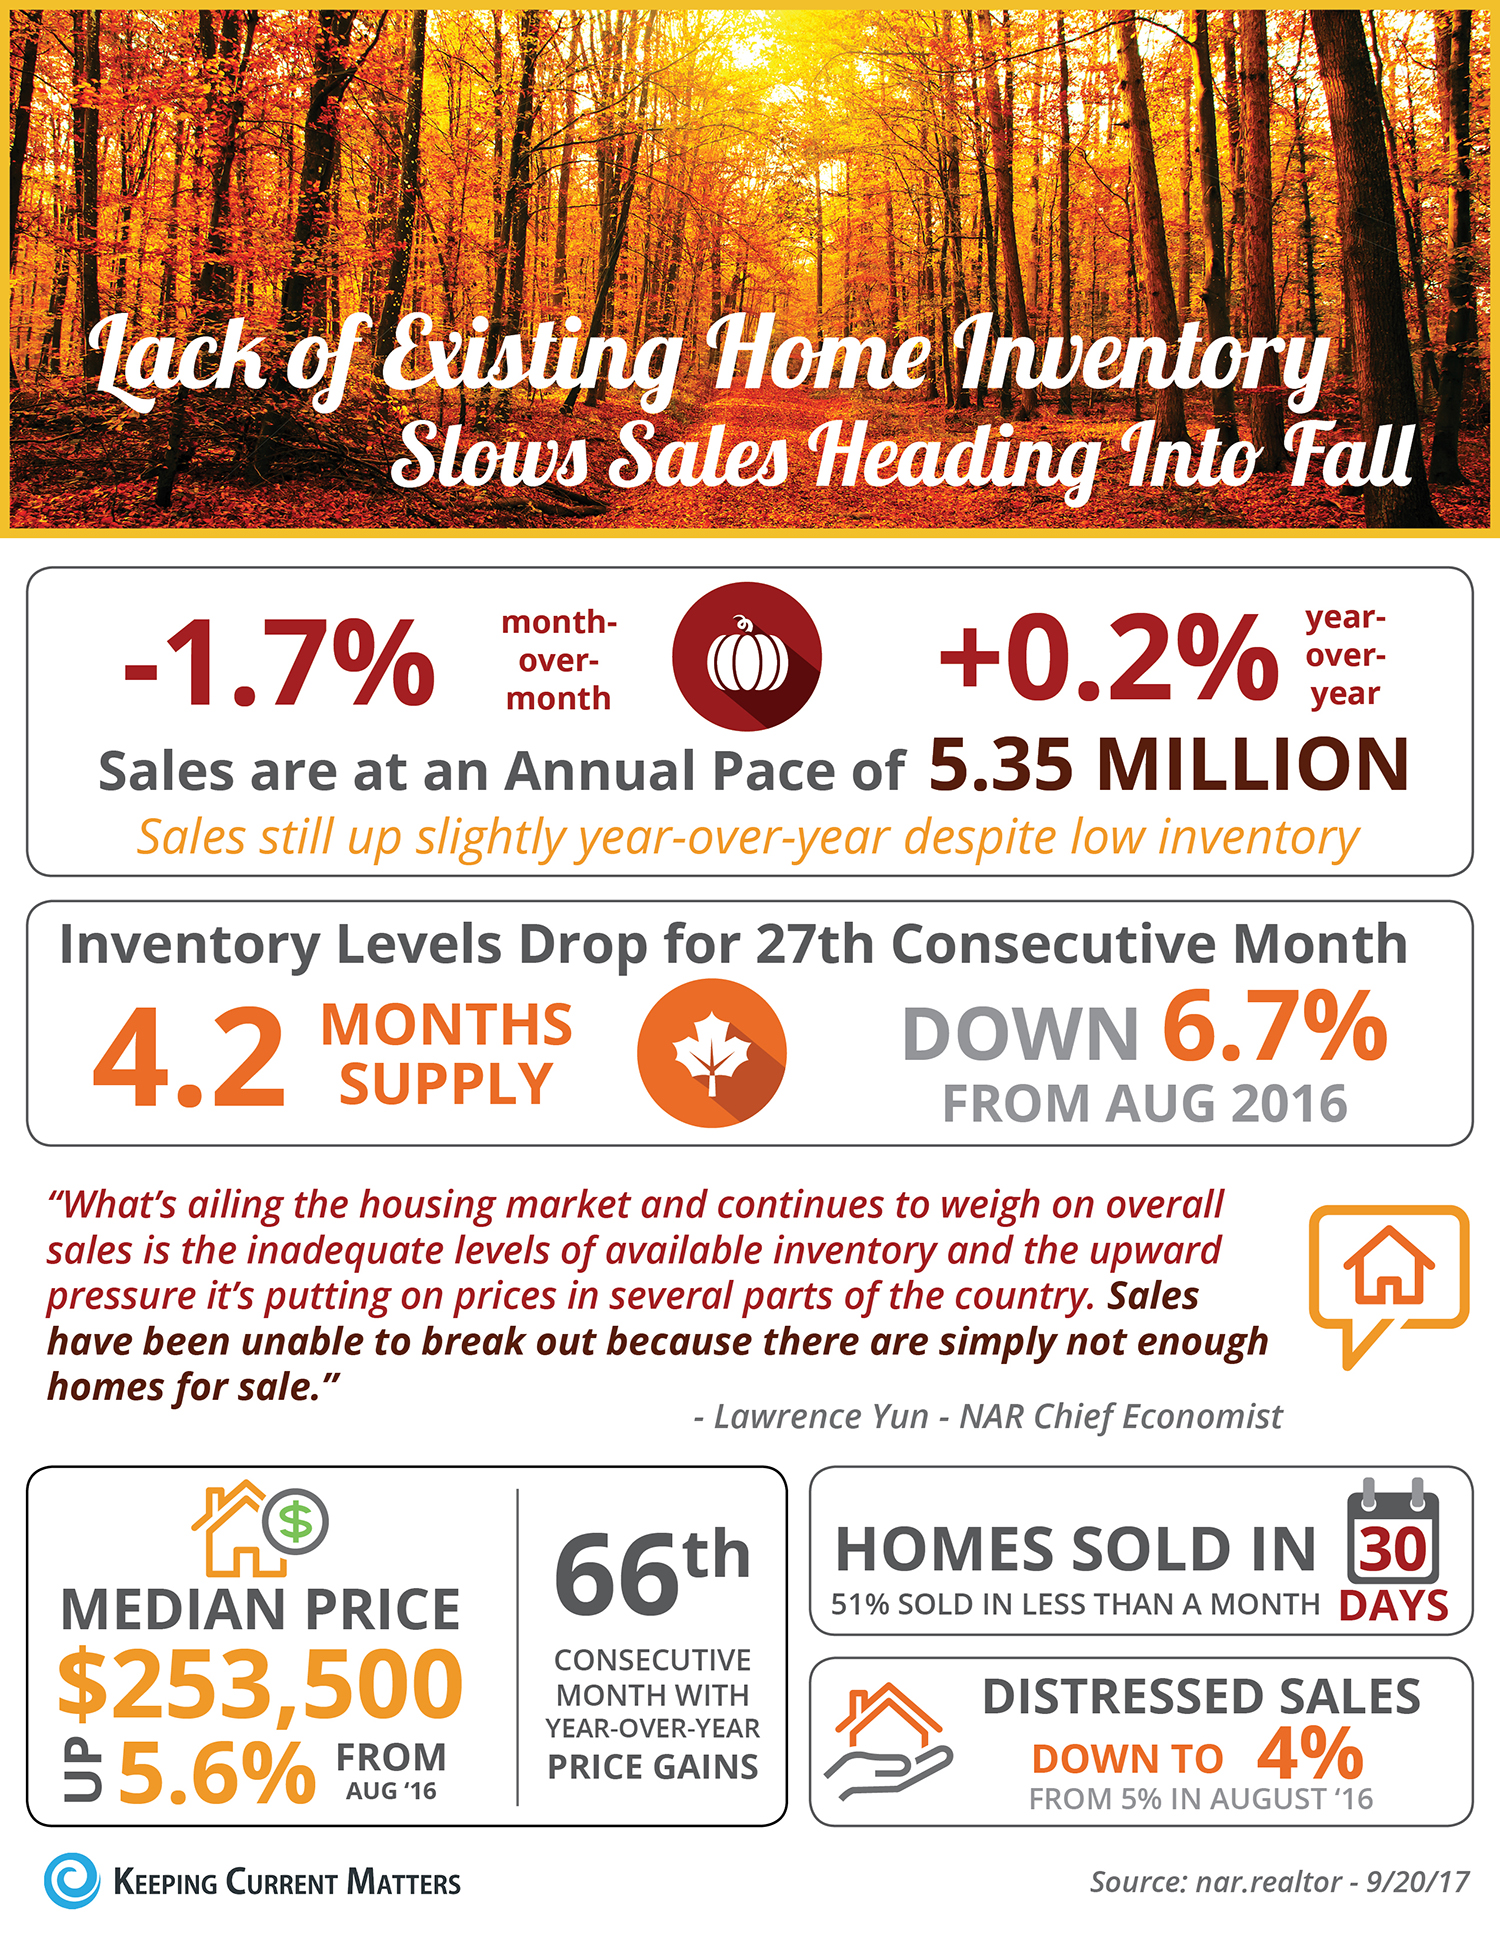 Lack of Existing Home Inventory Slows Sales Heading into Fall [INFOGRAPHIC]   Keeping Current Matters